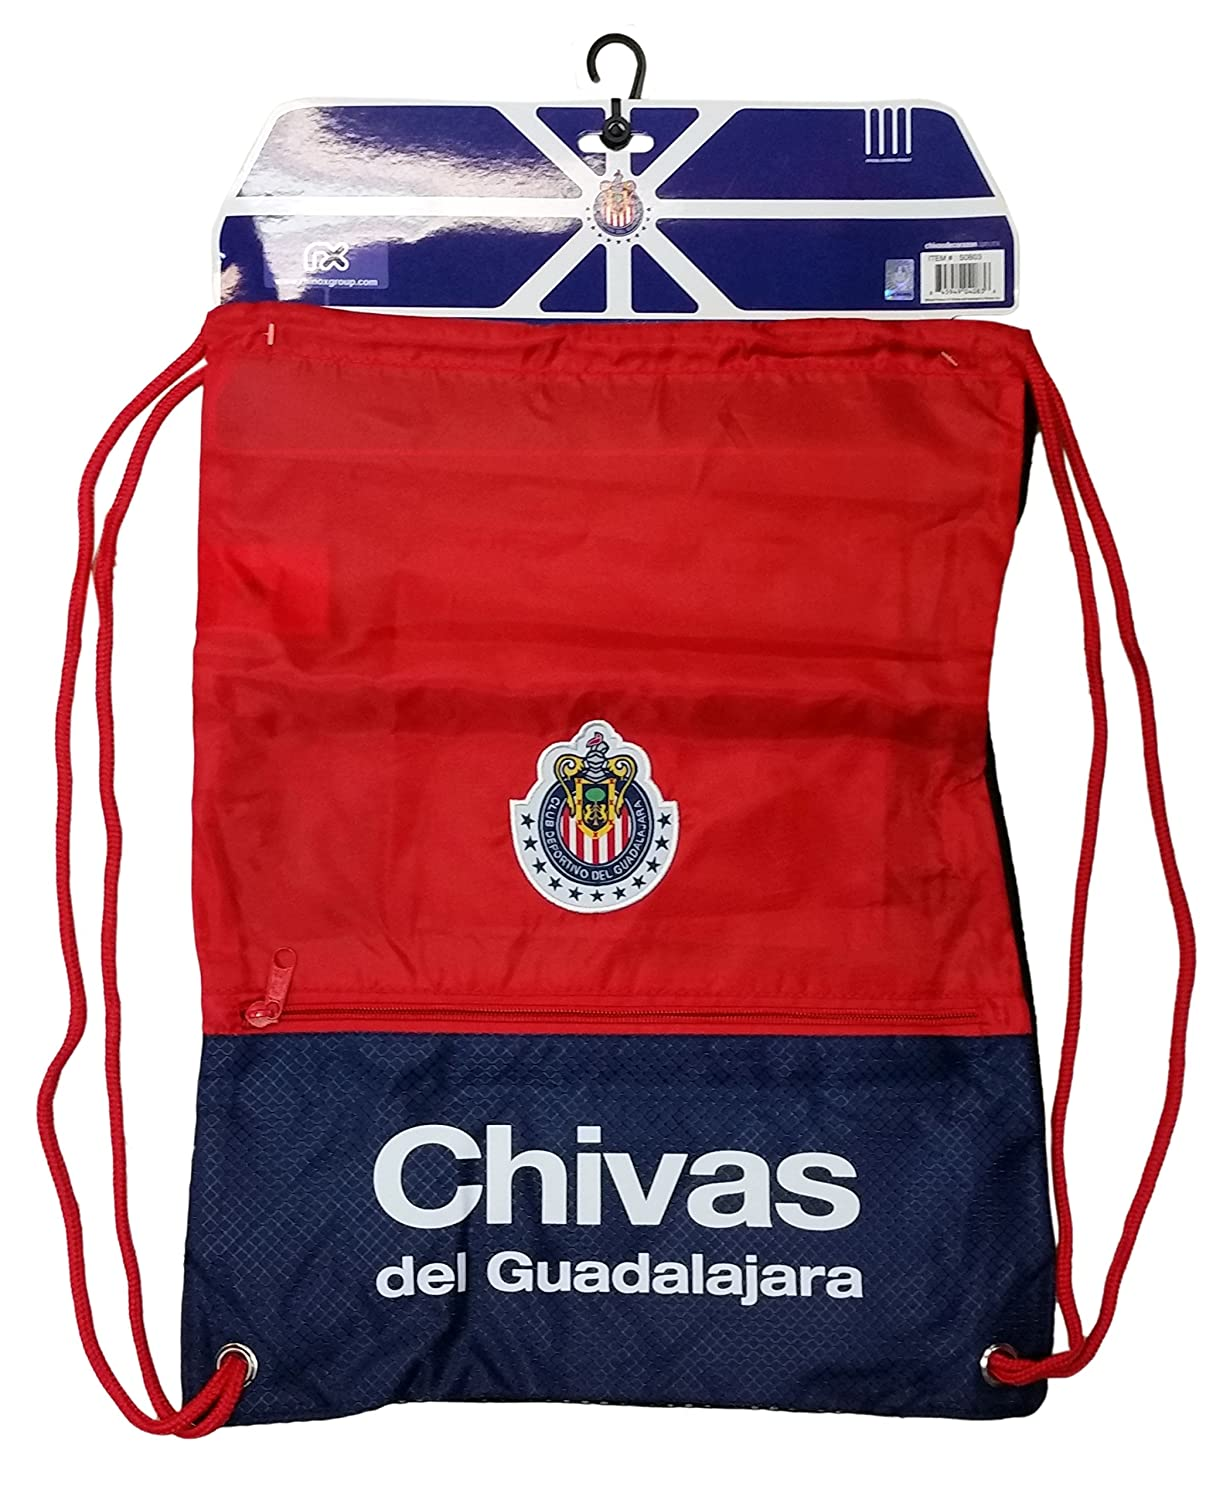 Merchandise Soccer Guadalajara Cinchバッグ、2016スタイル、Authentic de Chivas B01BQWB1GWレッド